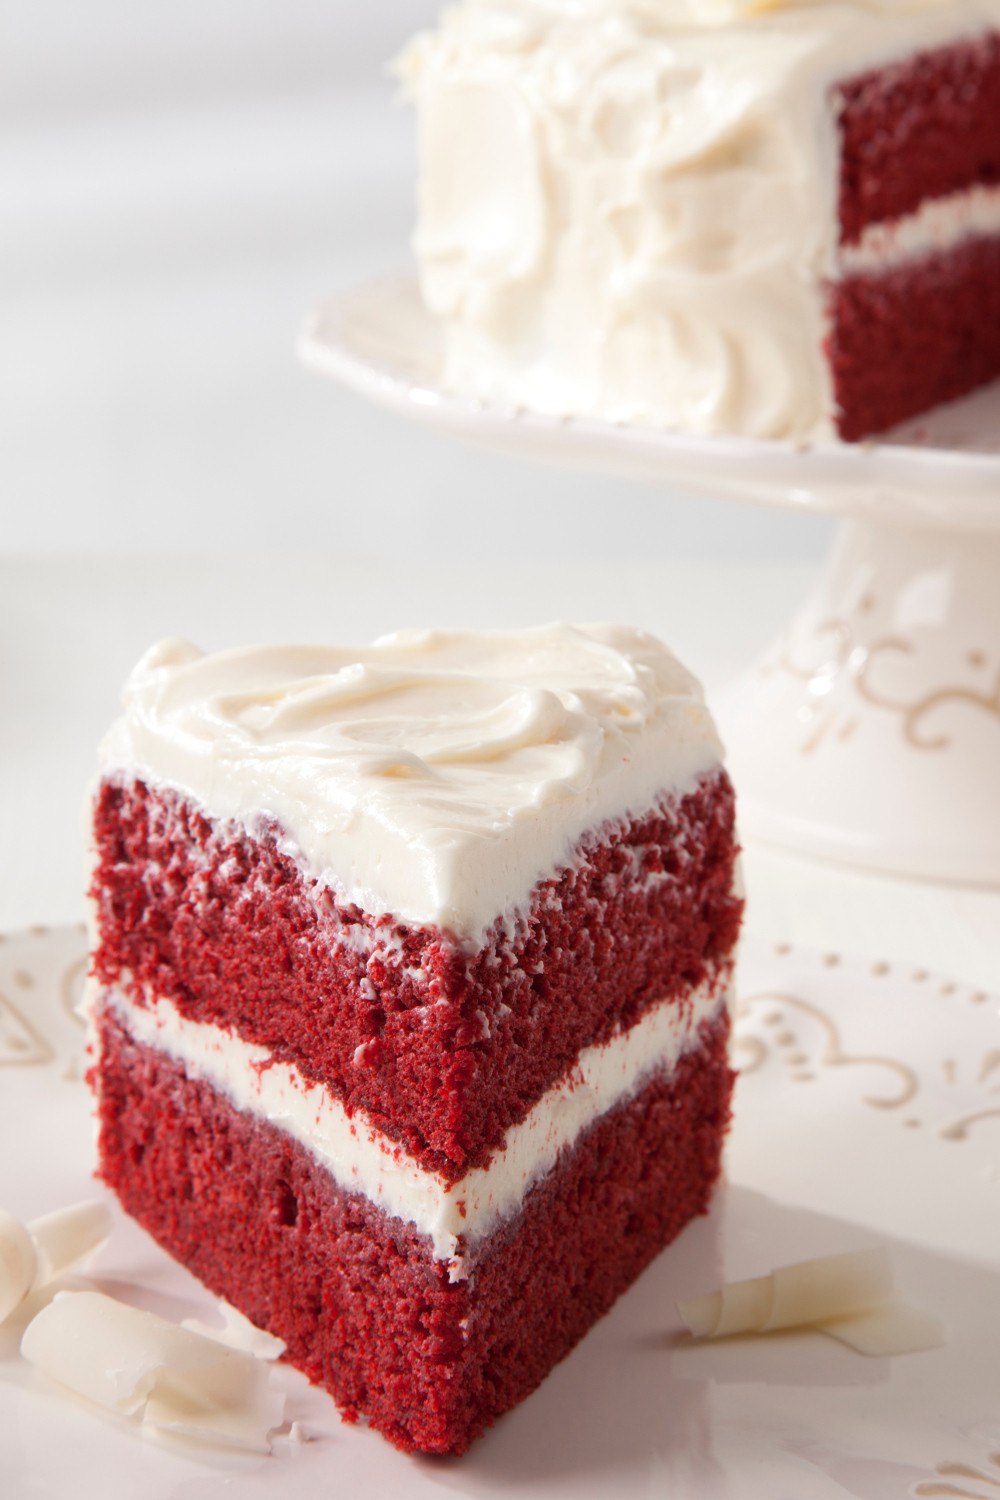 Red Velvet Cake Icing  A Pinch of This A Dash of That Red Velvet Cake with